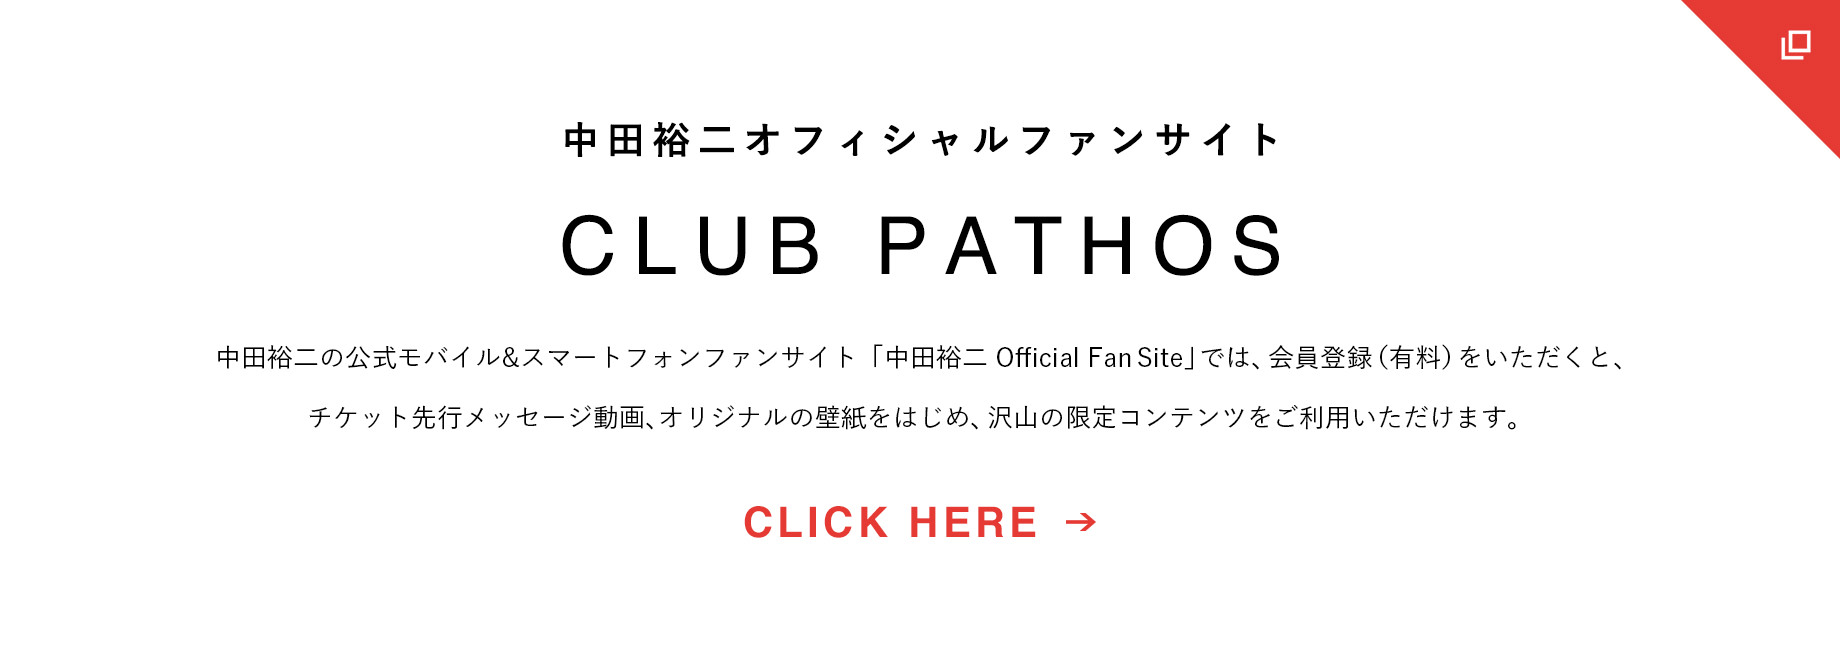 中田裕二 Official Fan Site CLUB PATHOS